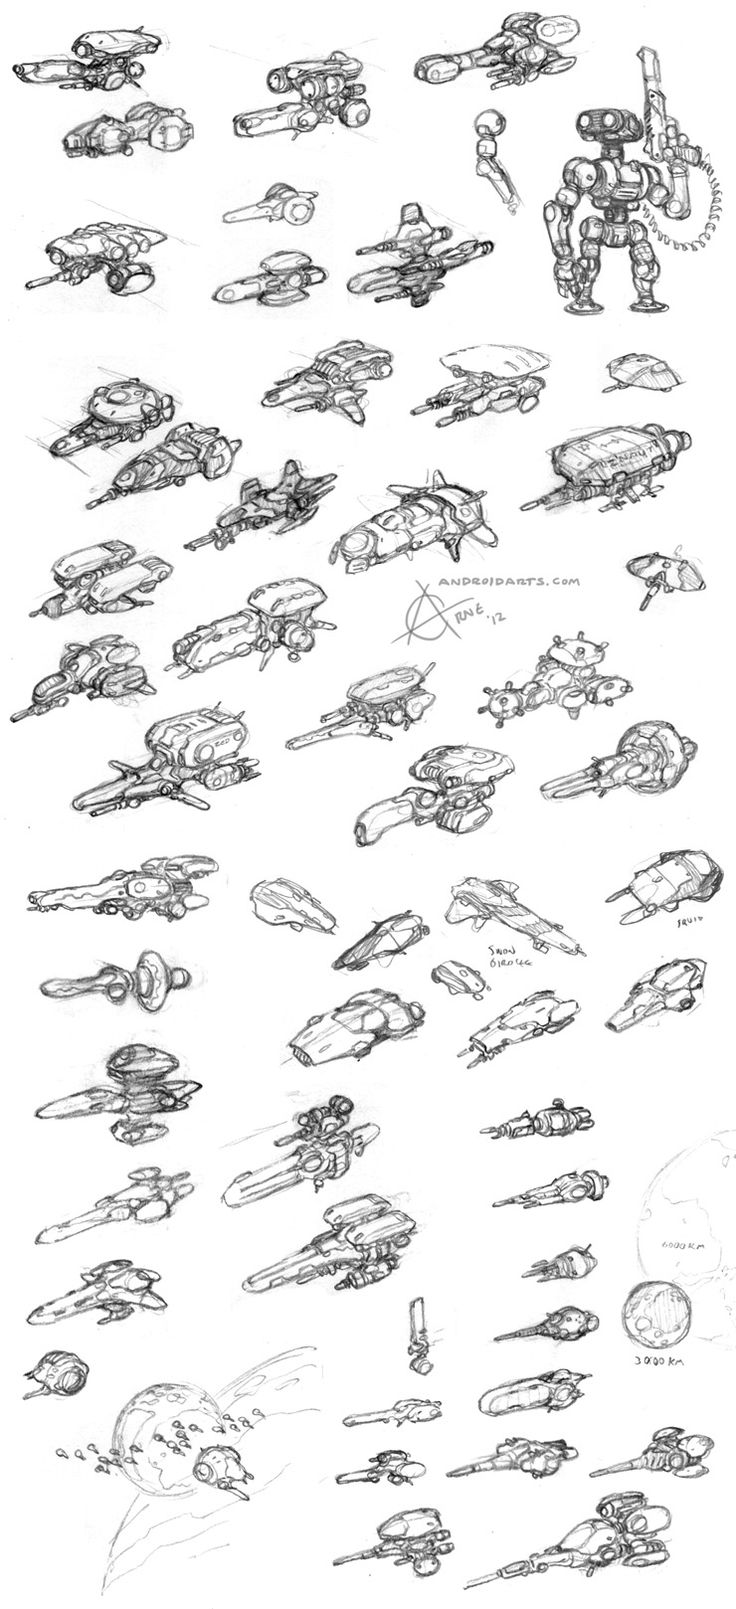 Spaceship design - Spaceship Concepts - Vehicle Design